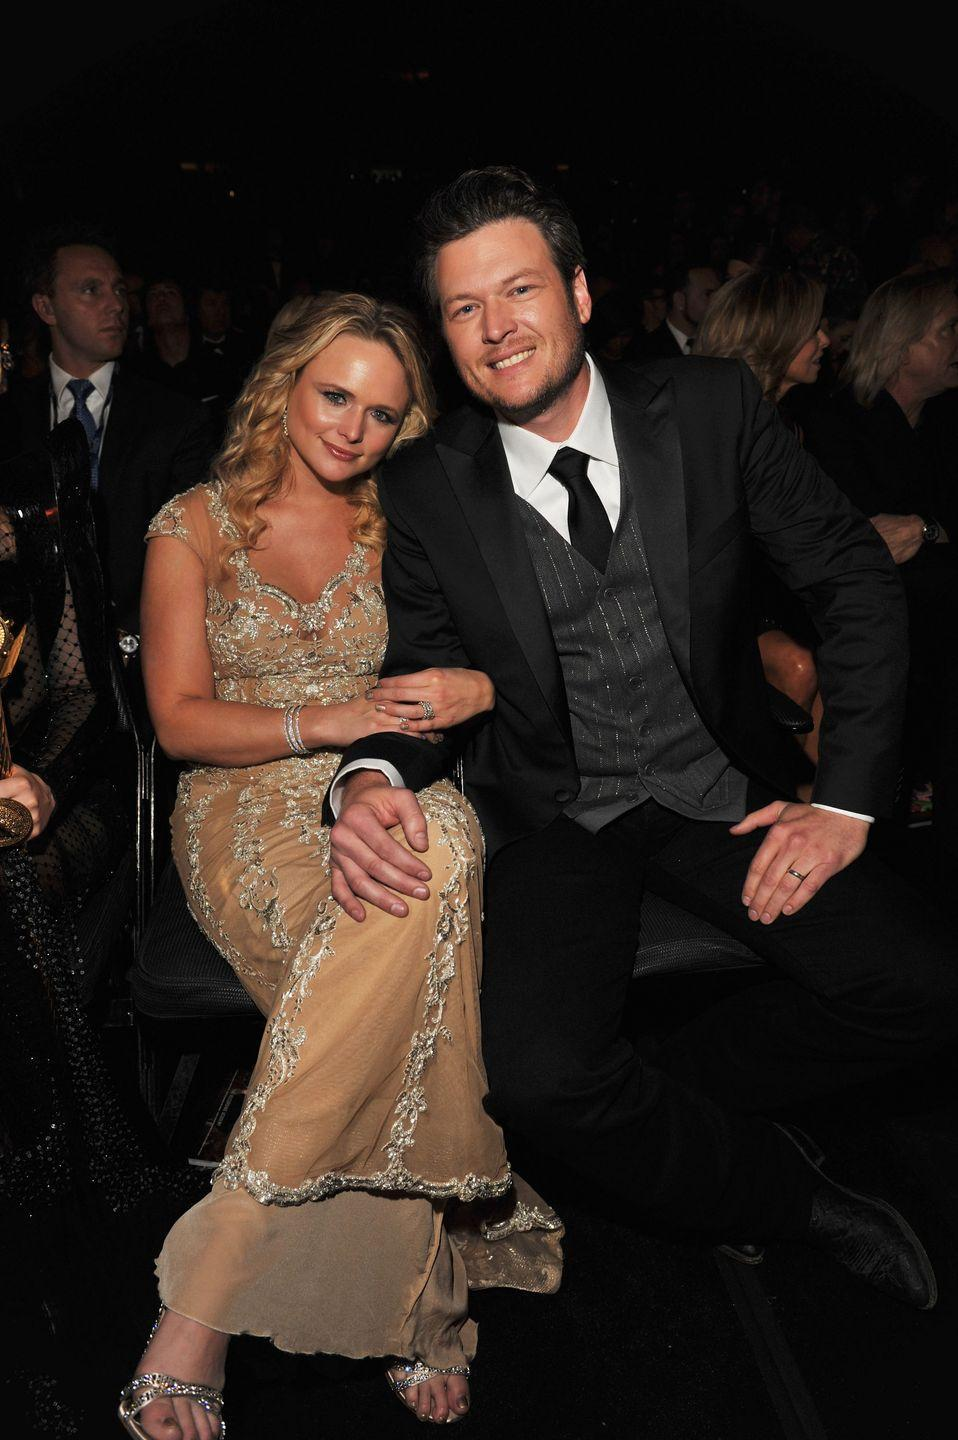 <p>Blake Shelton files for divorce from fellow country singer Miranda Lambert. The pair were married for four years and dated for six years before that.</p>